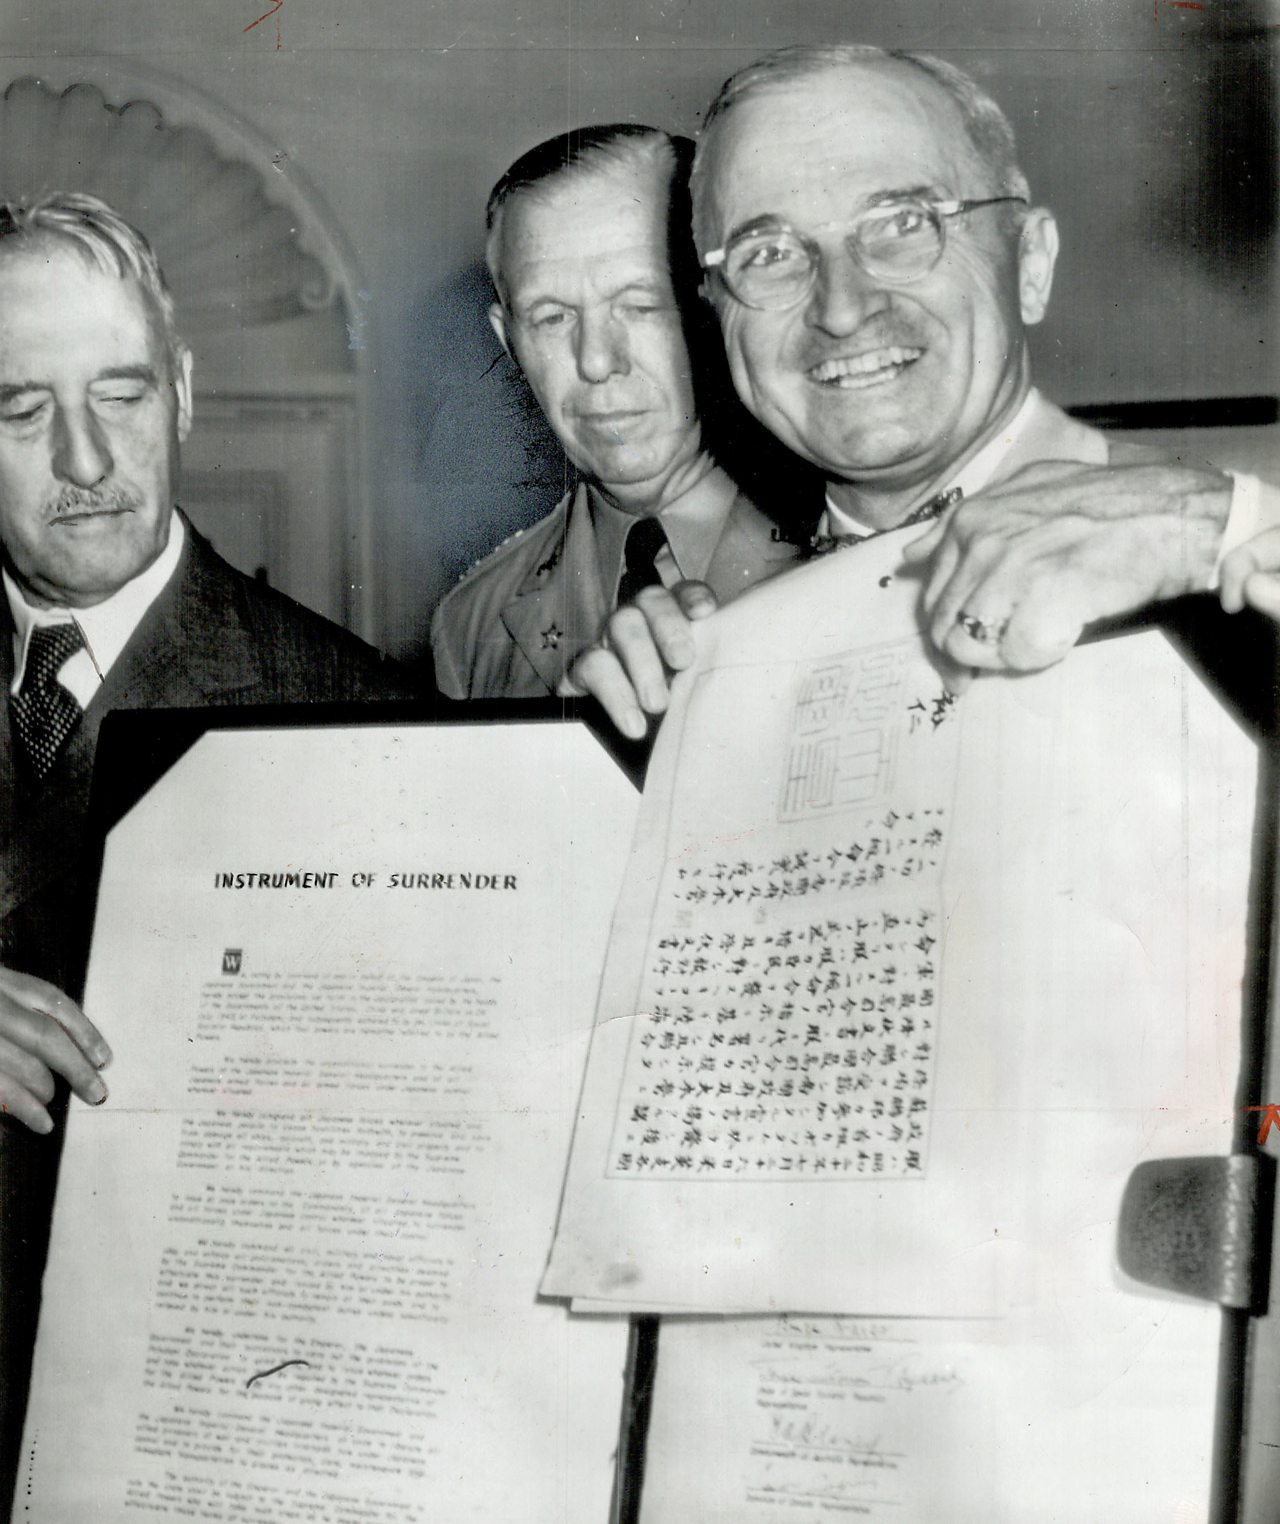 President Truman indicating Hirohito's signature, authorising Japan's surrender.